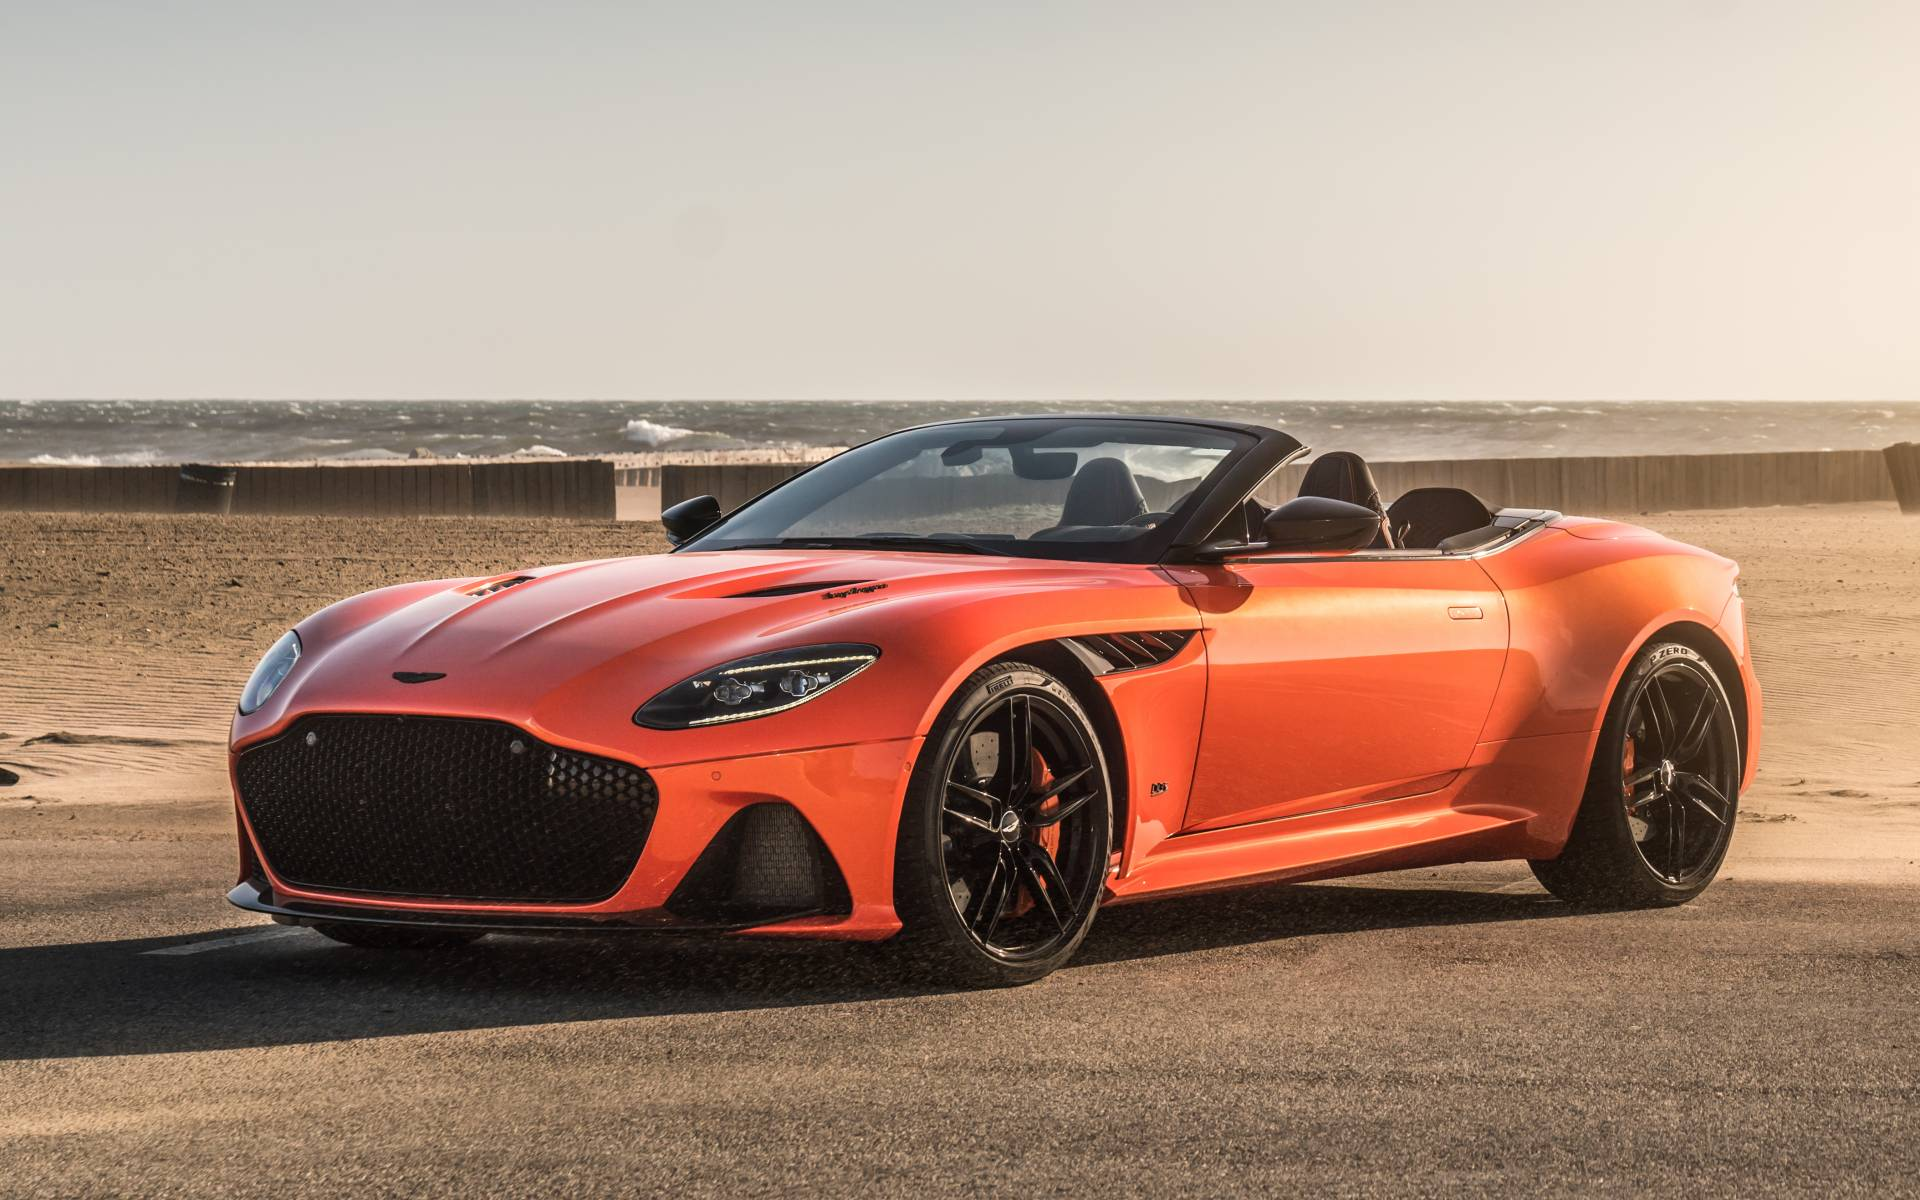 2020 Aston Martin Dbs Superleggera Rating The Car Guide